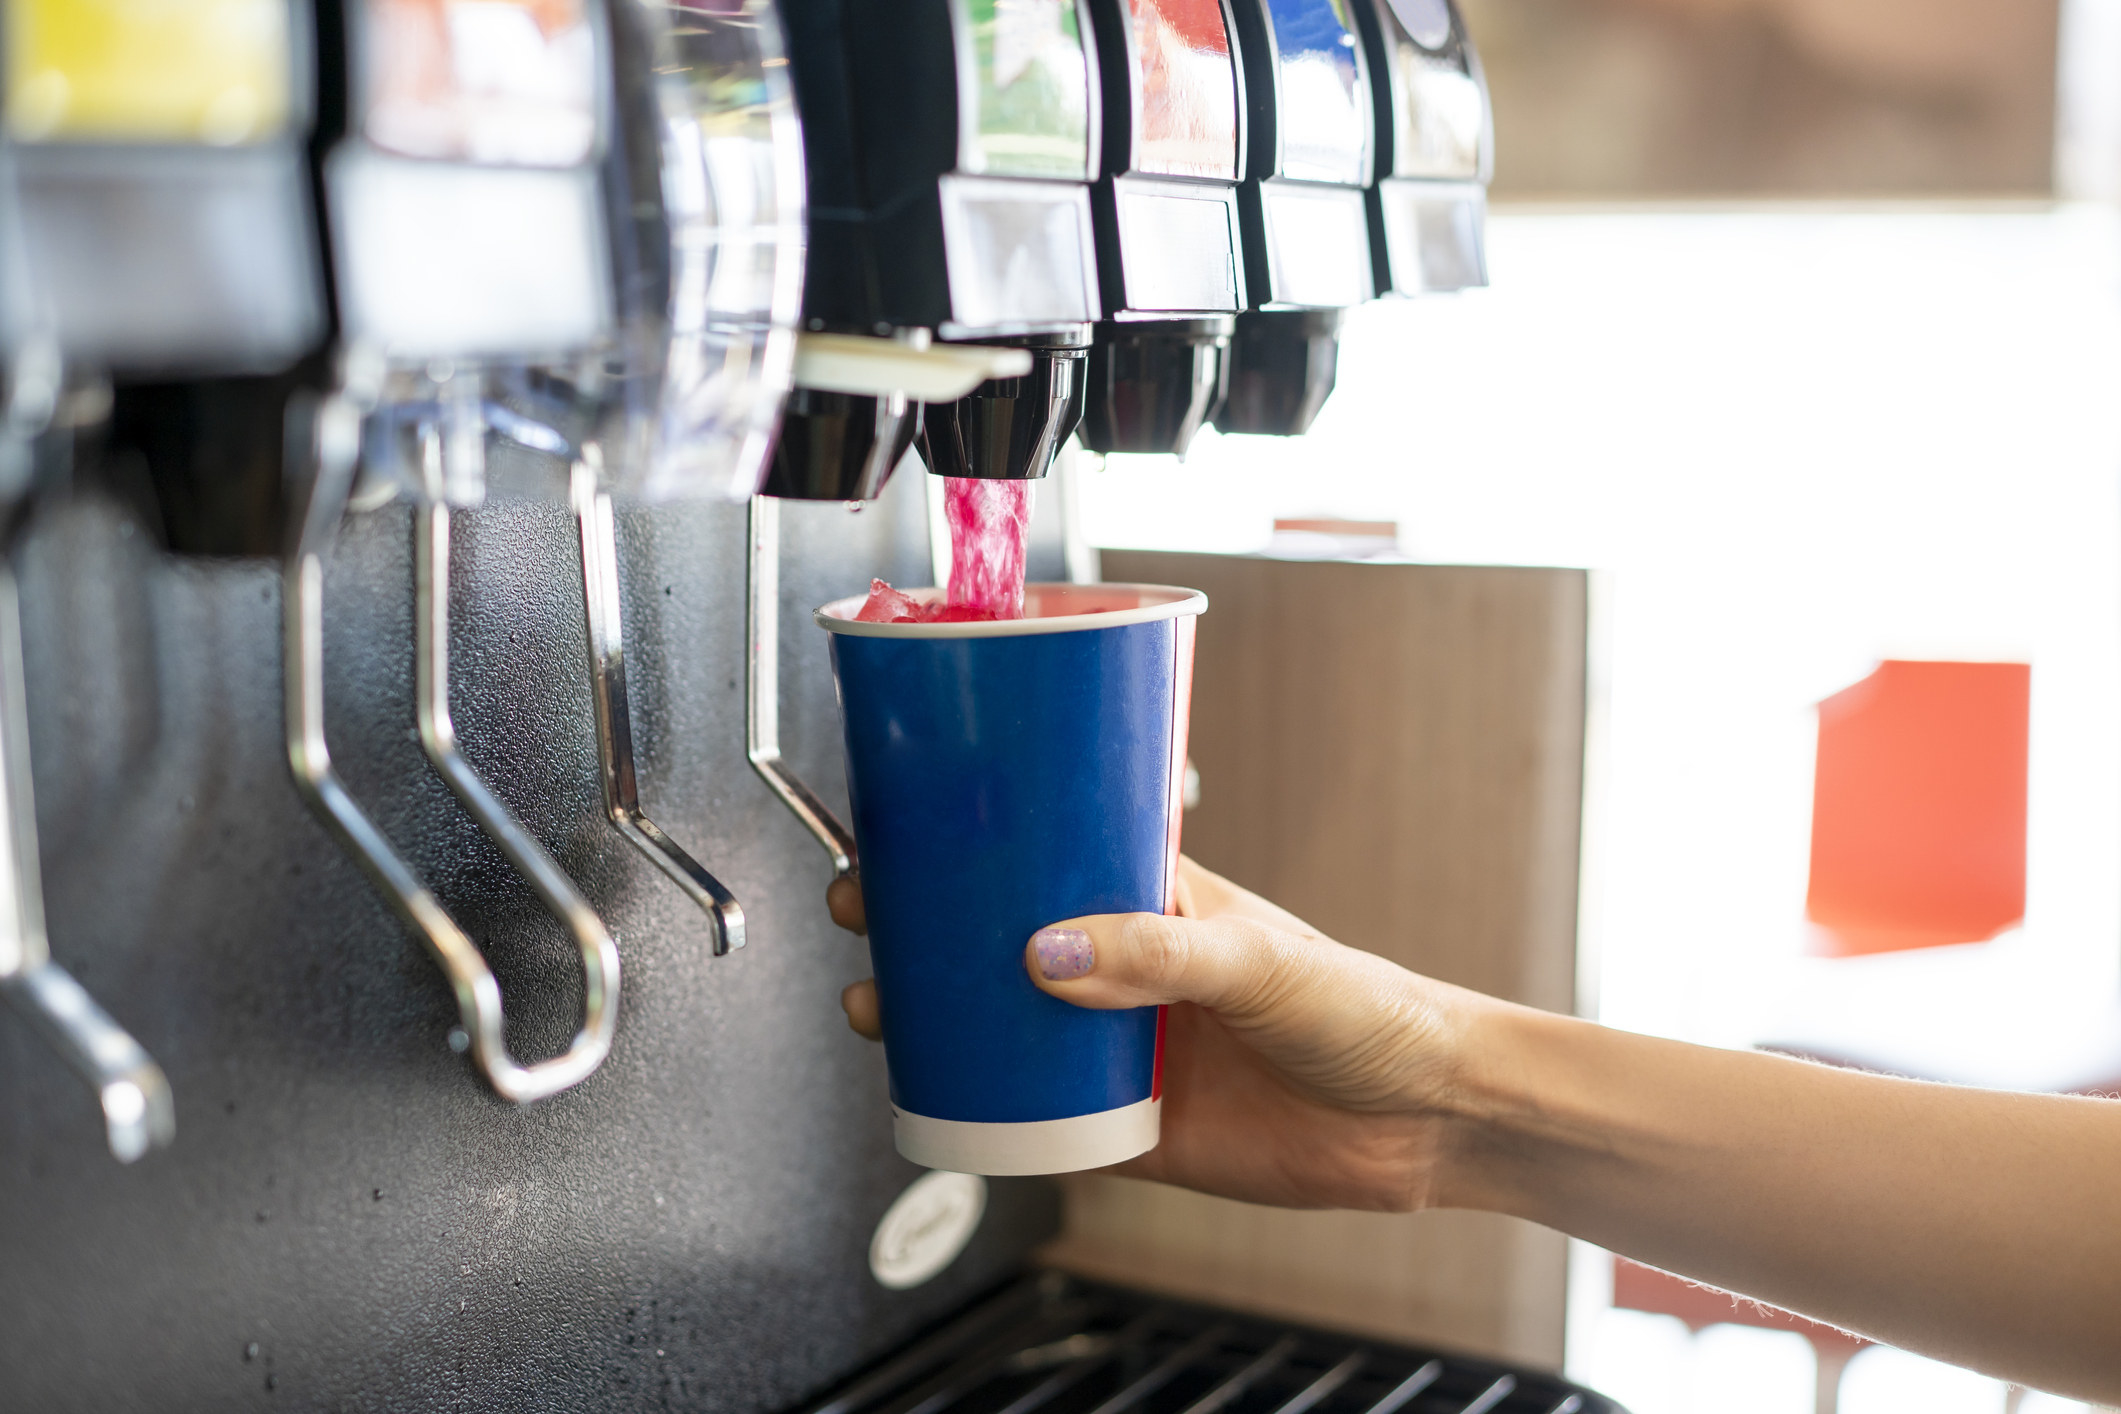 Someone pouring a soda from a soda machine.